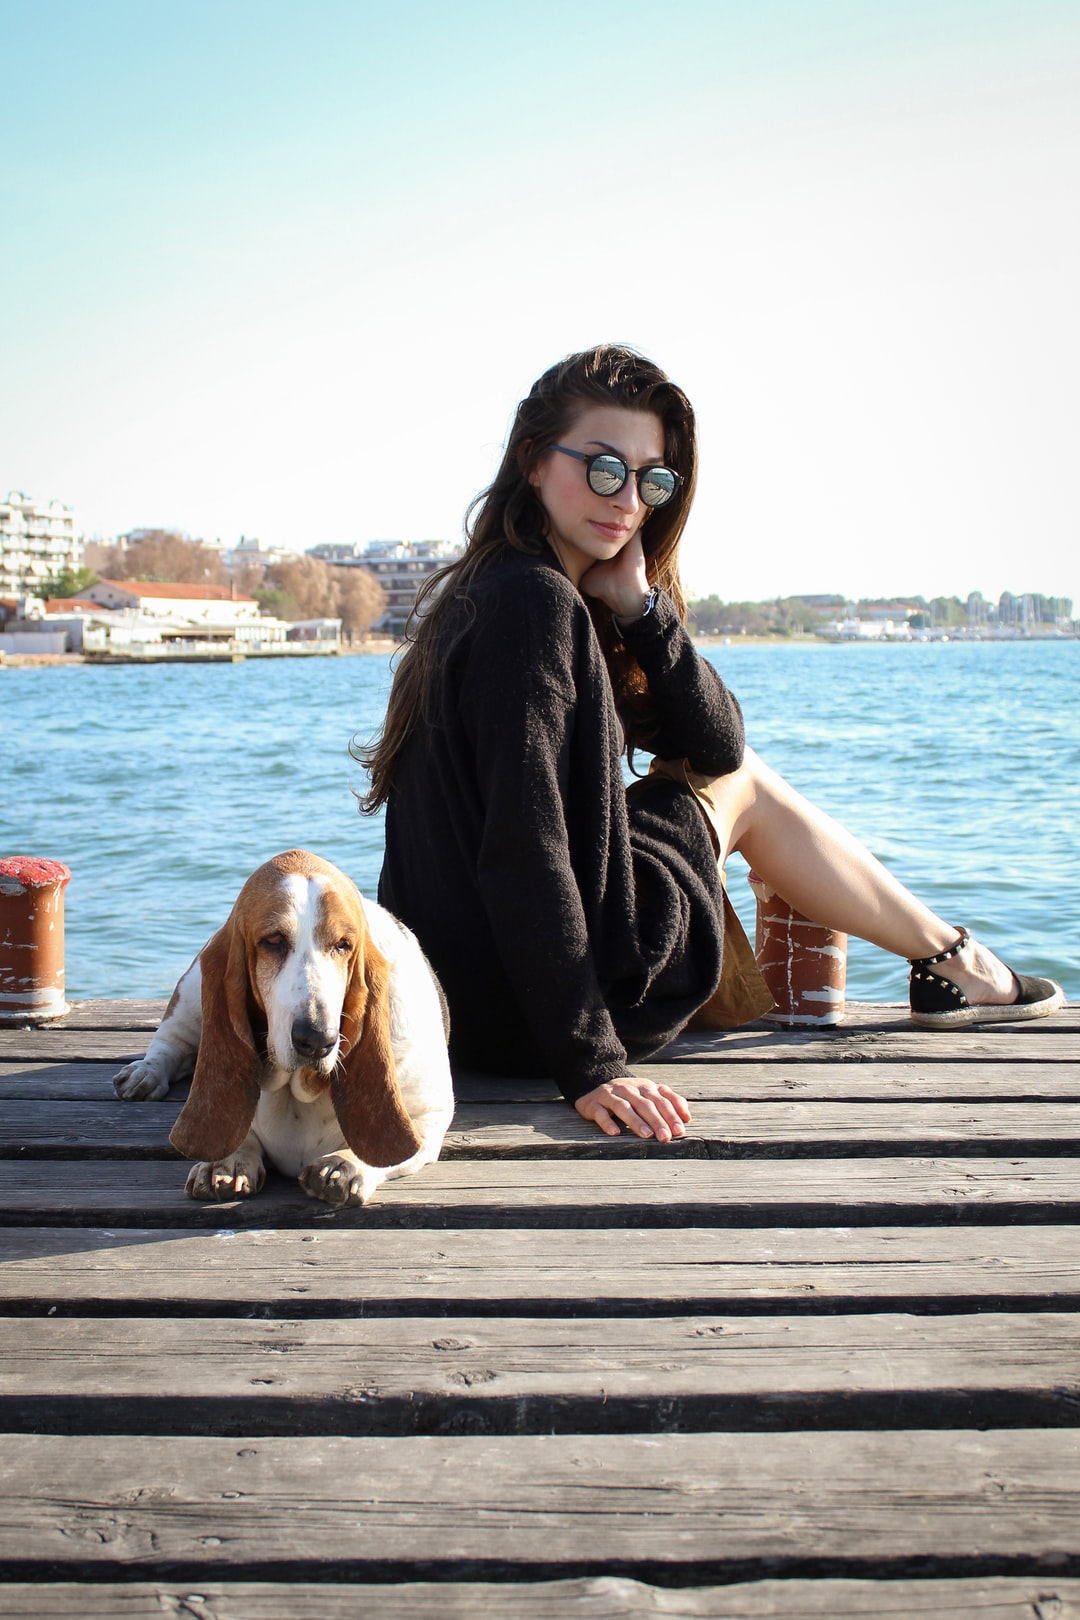 Female model realing with the her dog